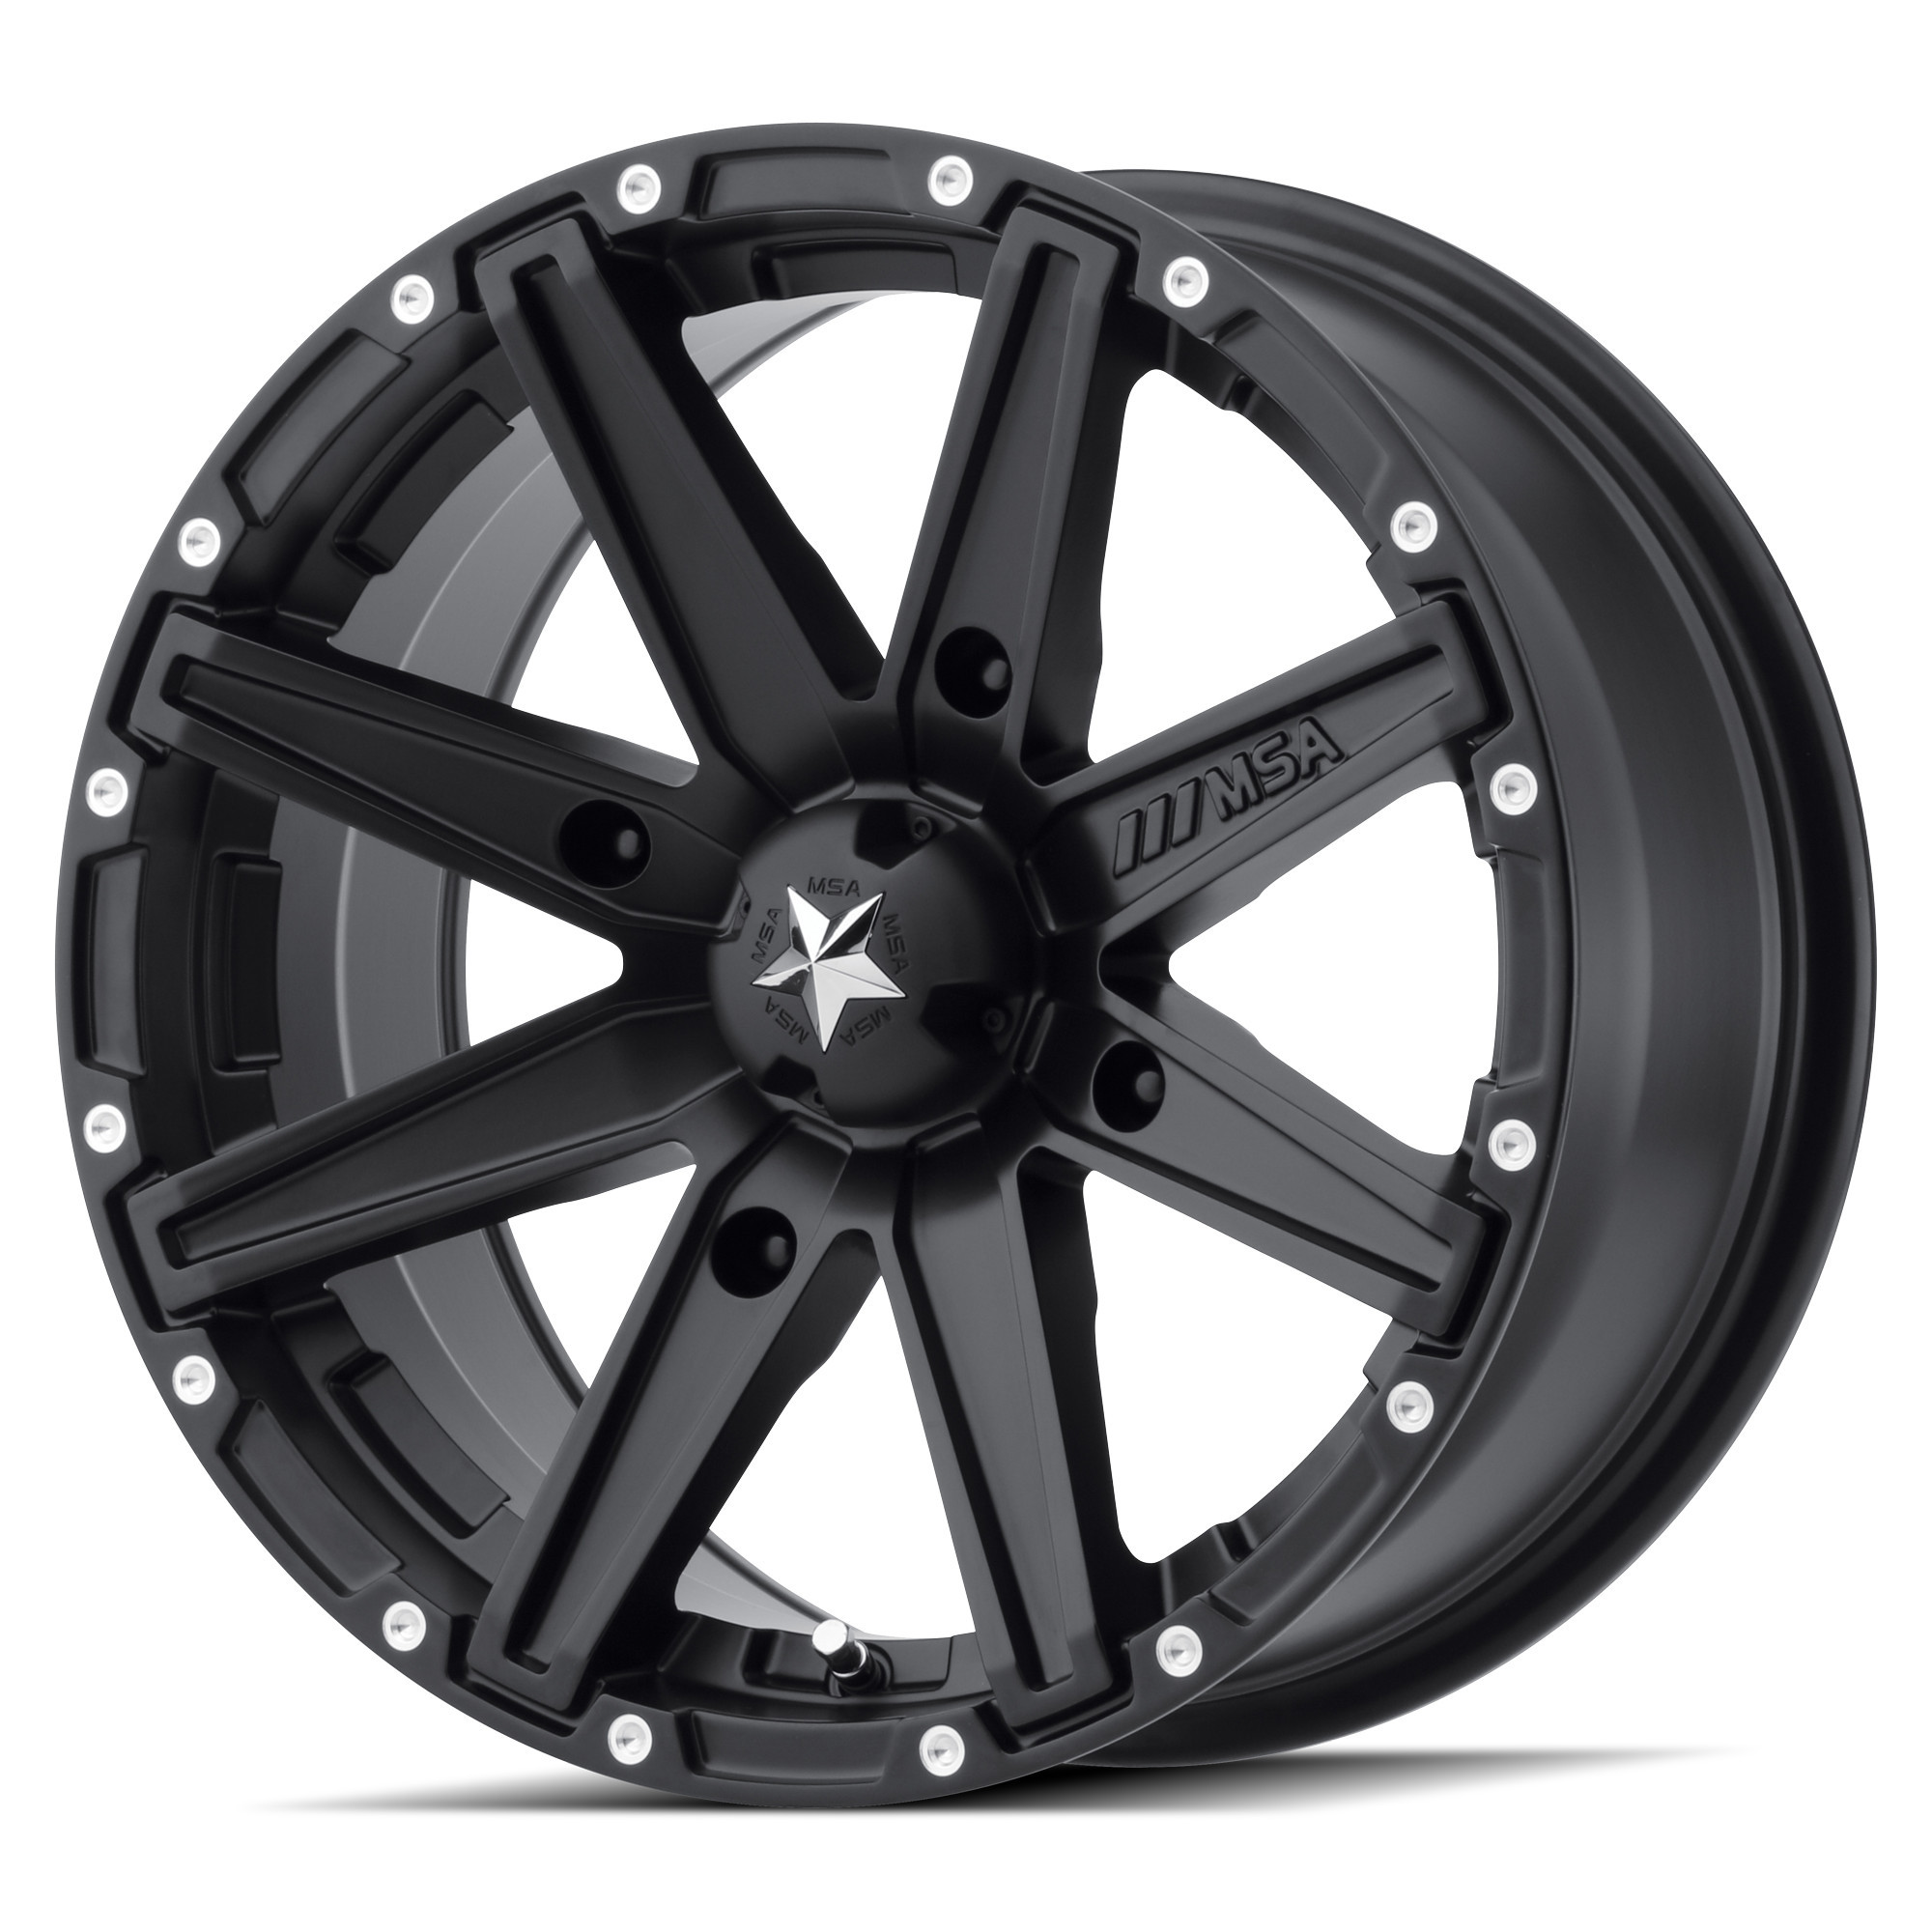 MSA 15x7 4x137 M33 Clutch Satin Black vannesarja Can-Am